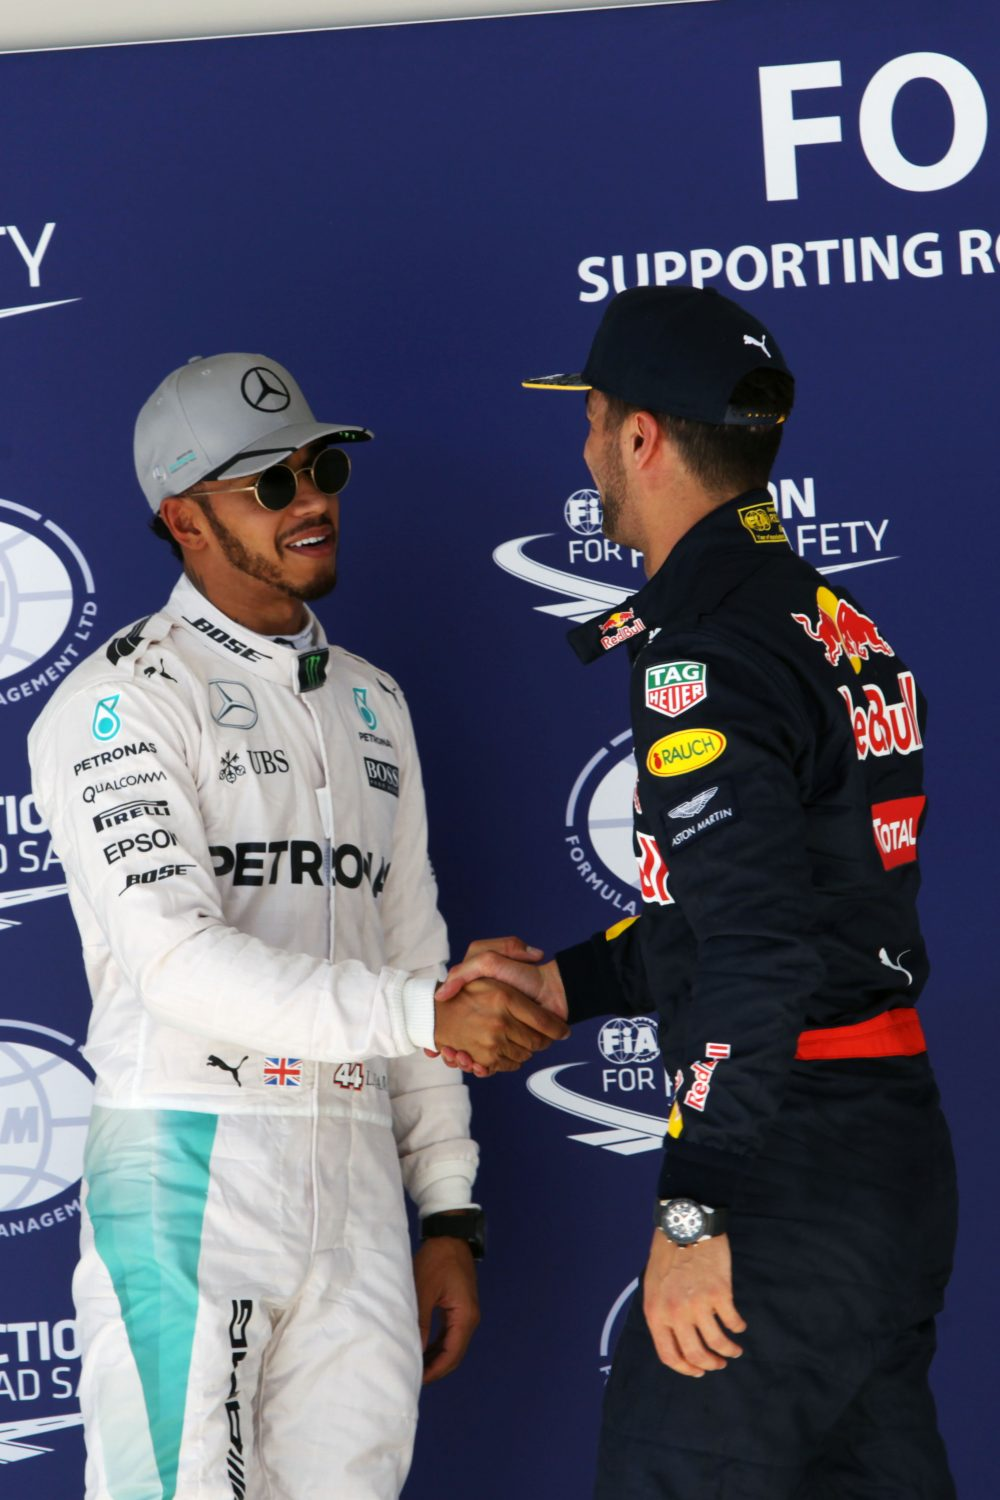 Formula One World Championship 2016, Round 18, United States Grand Prix, Austin, United States, Saturday 22 October 2016 - L to R): Lewis Hamilton (GBR) Mercedes AMG F1 celebrates his pole position in parc ferme with third placed Daniel Ricciardo (AUS) Red Bull Racing.